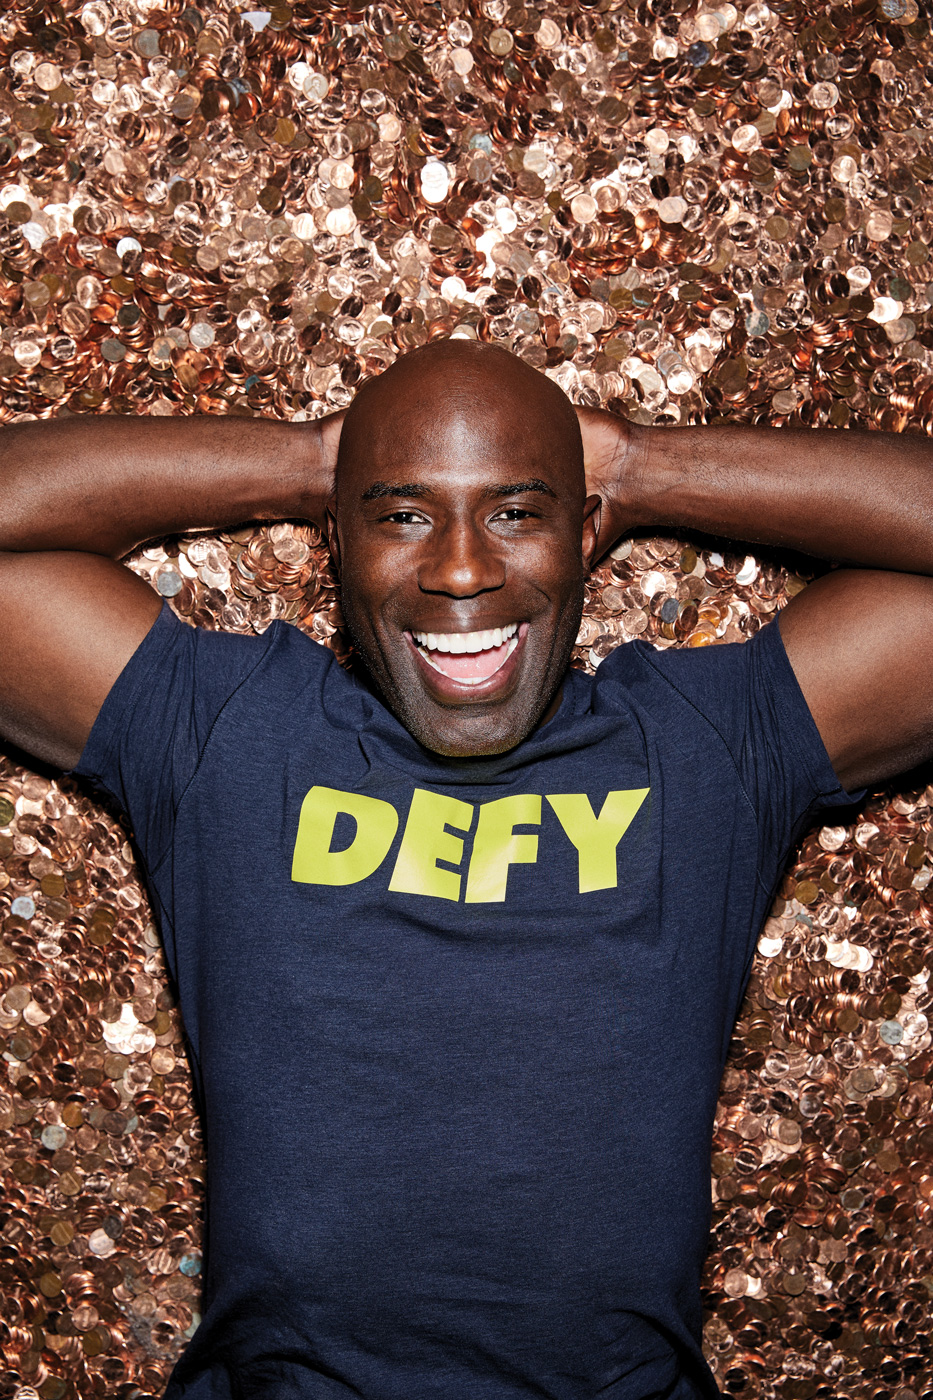 Terrell Davis laying in pennies for defy